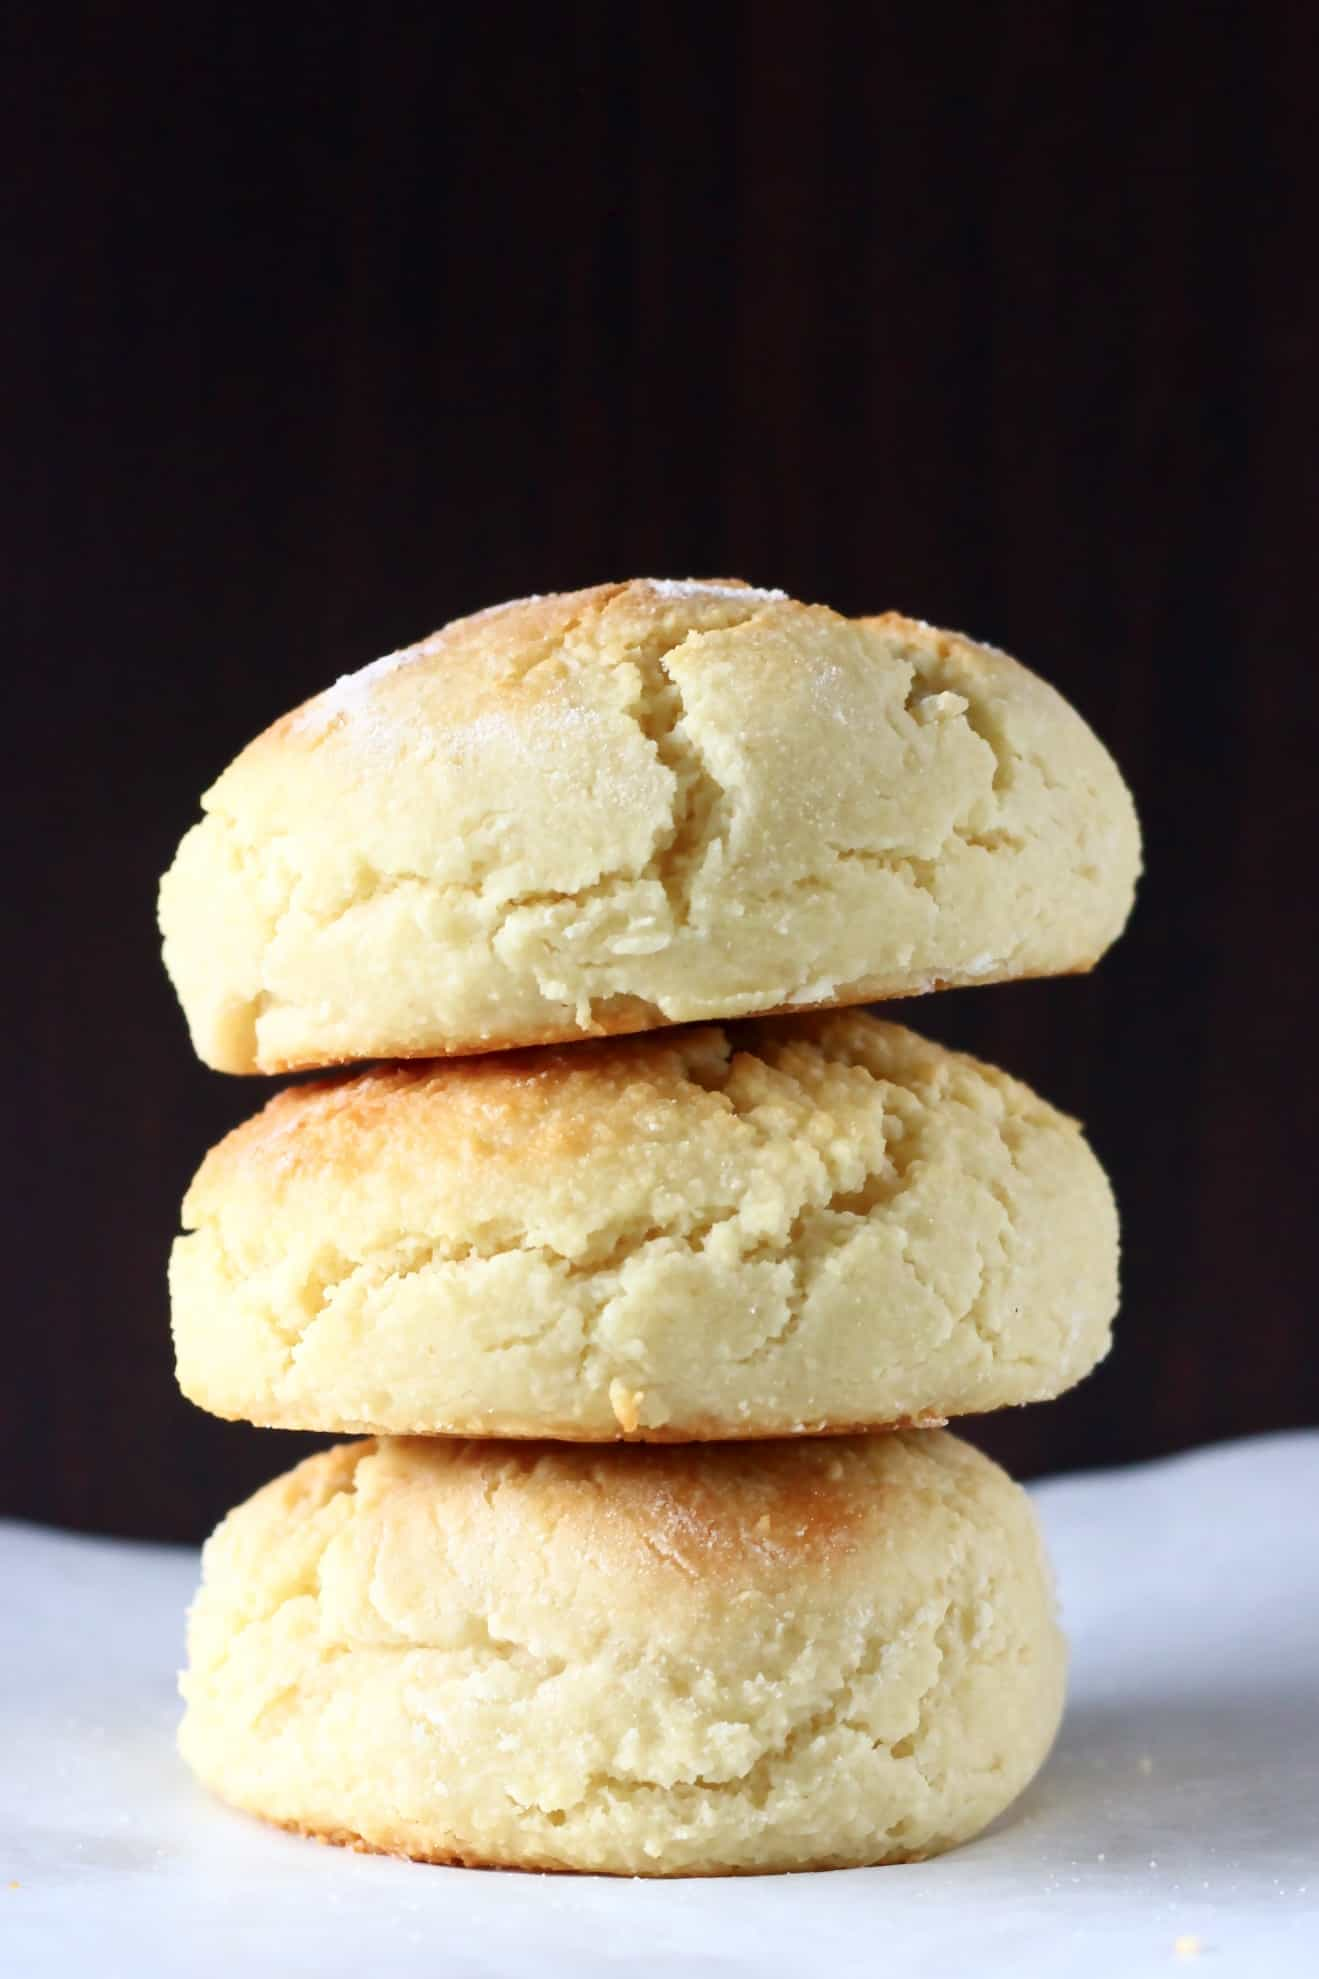 Three biscuits stacked on top of each other